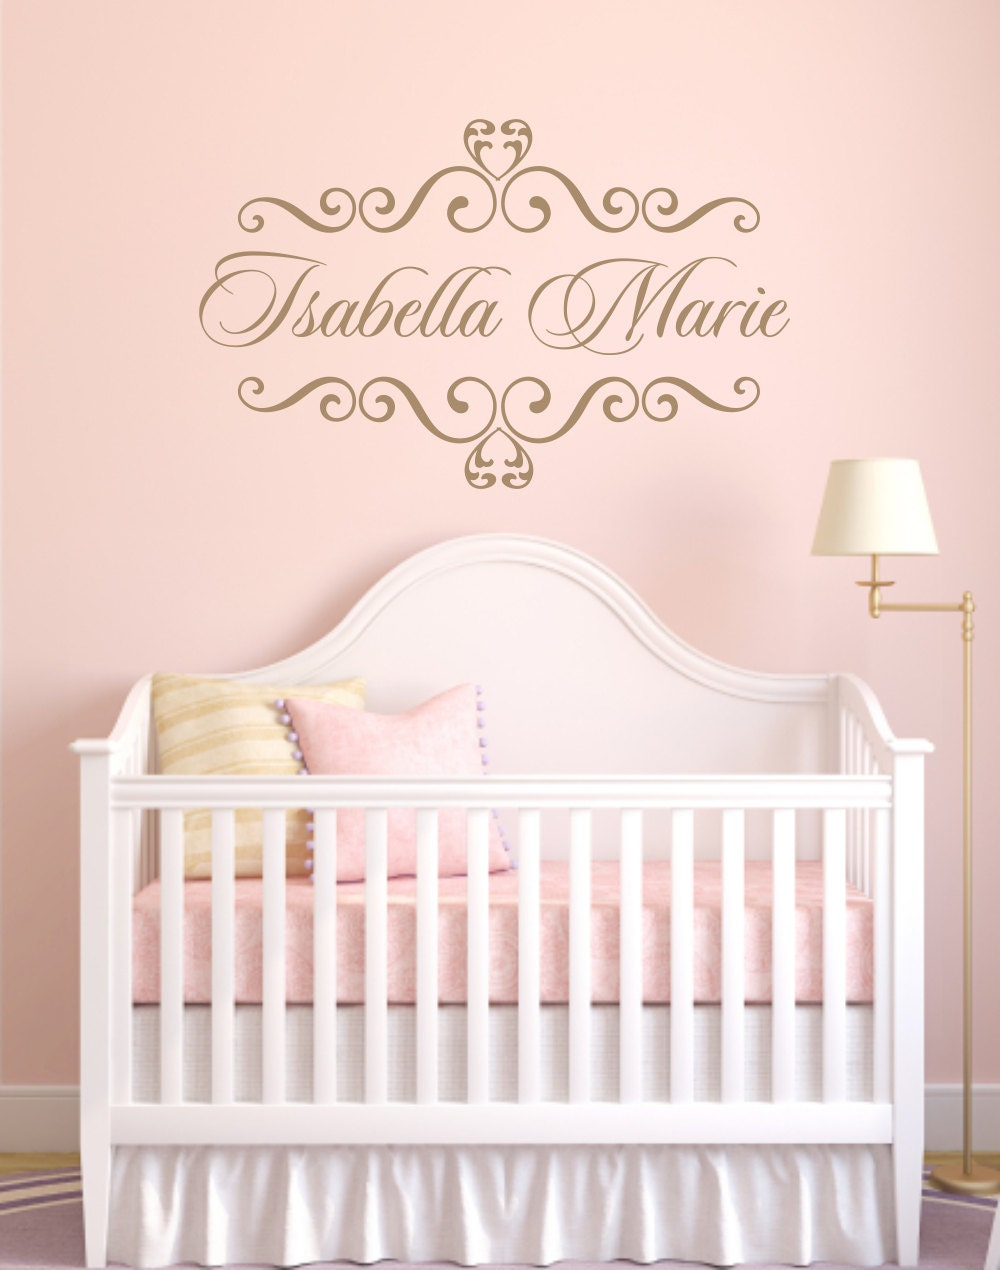 Baby Names For Bedrooms: Personalized Baby Nursery Name Vinyl Wall Decal By Wallartsy